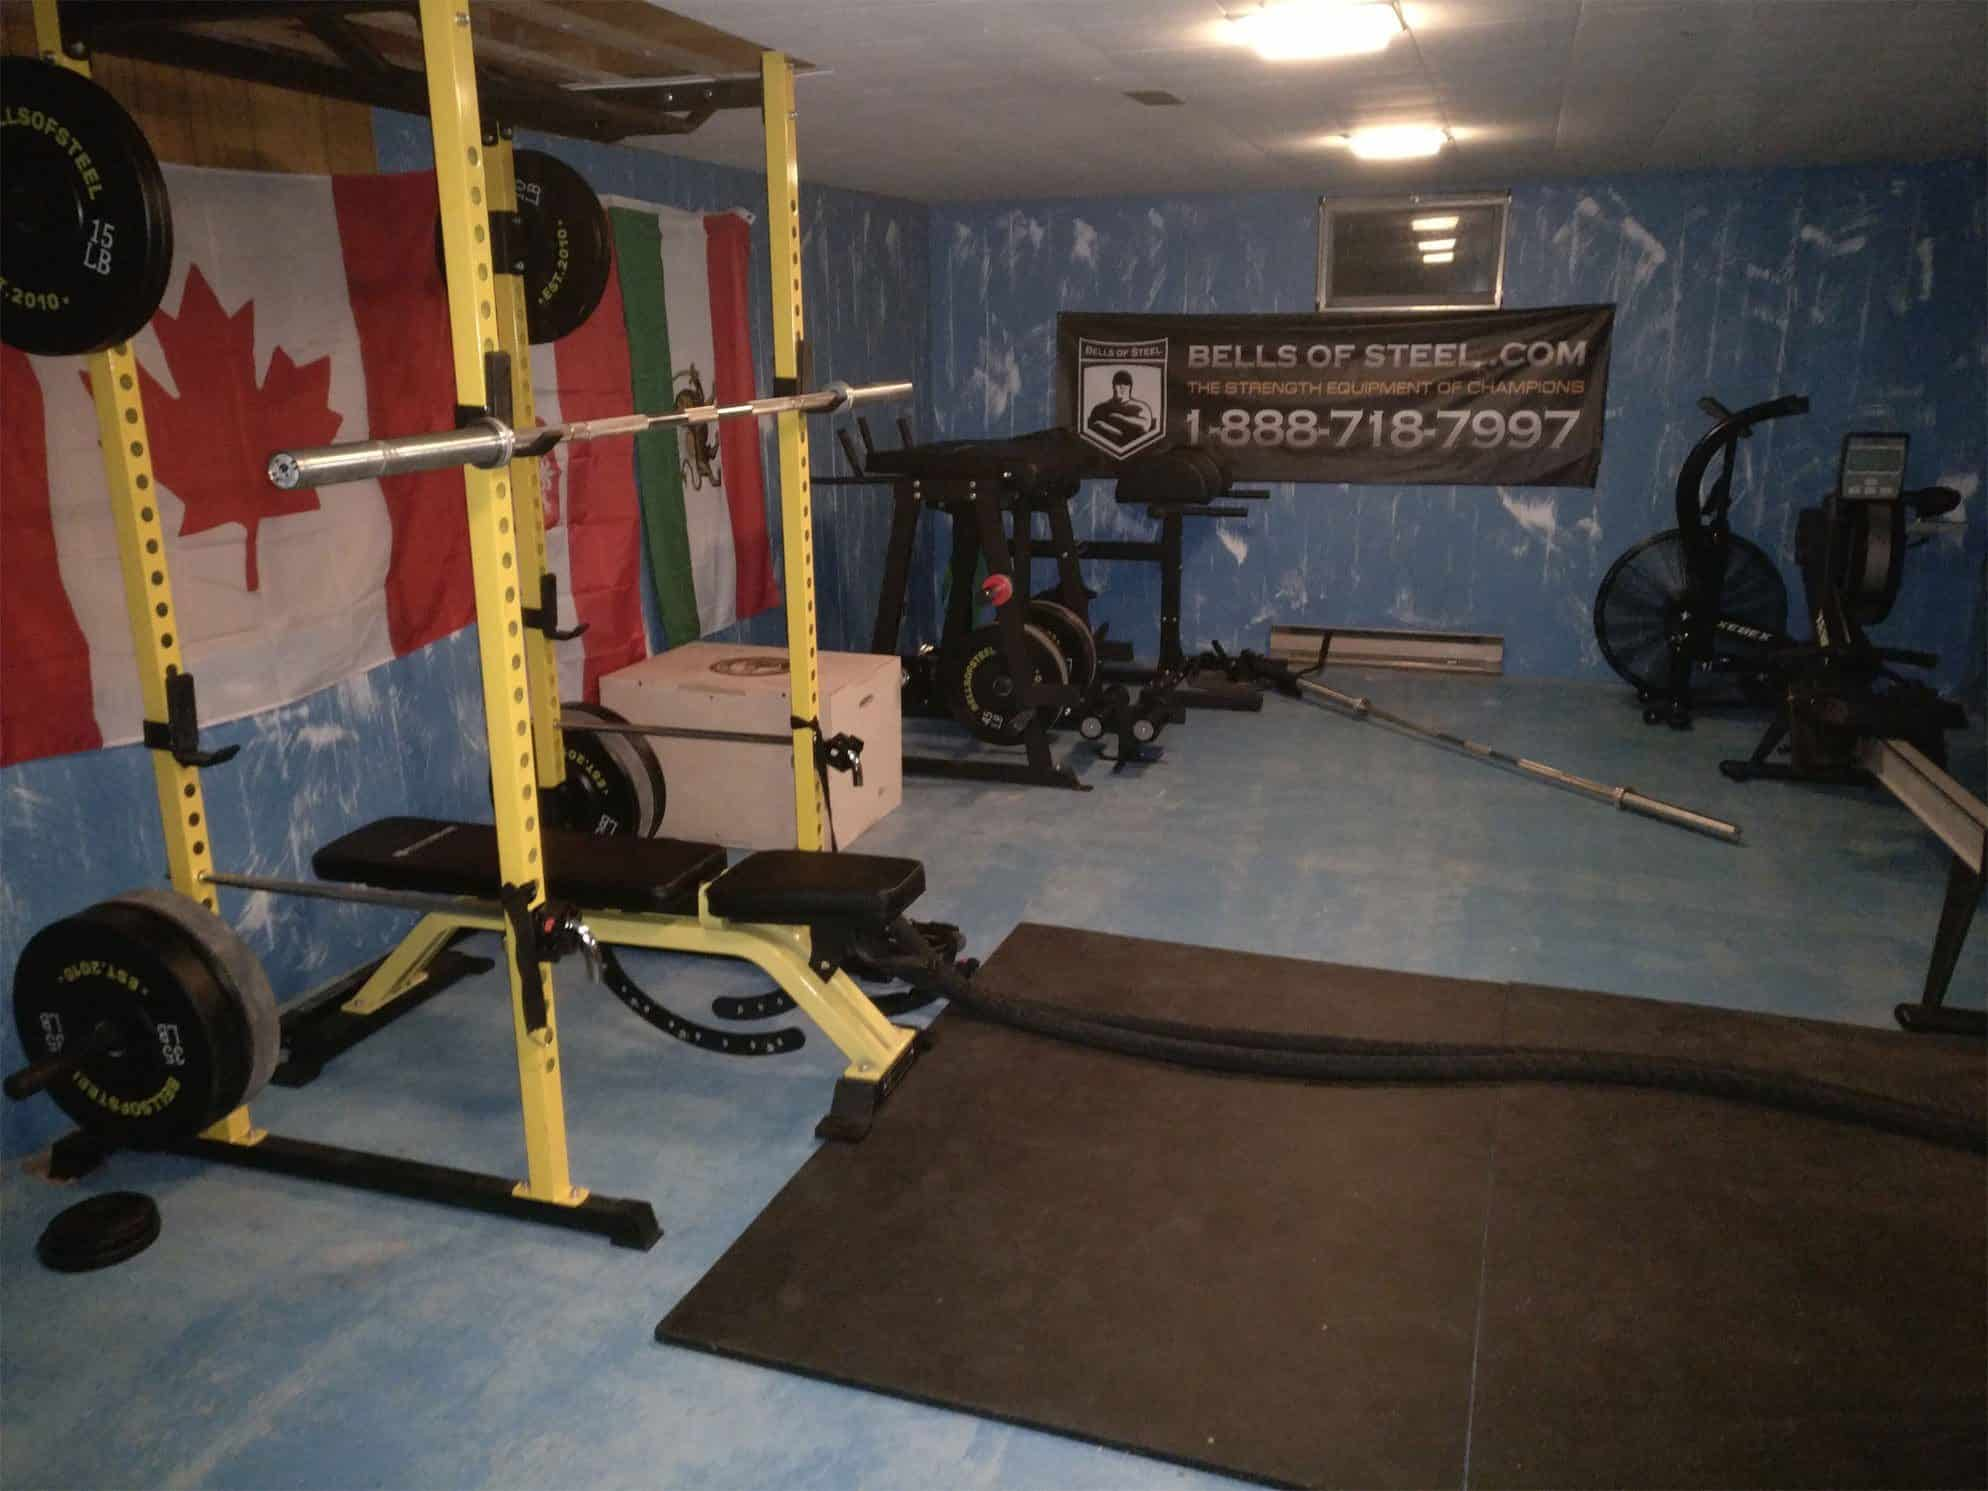 Garage Gym Reviews Diy Platform Home Gym How To Create The Ultimate House Of Strength